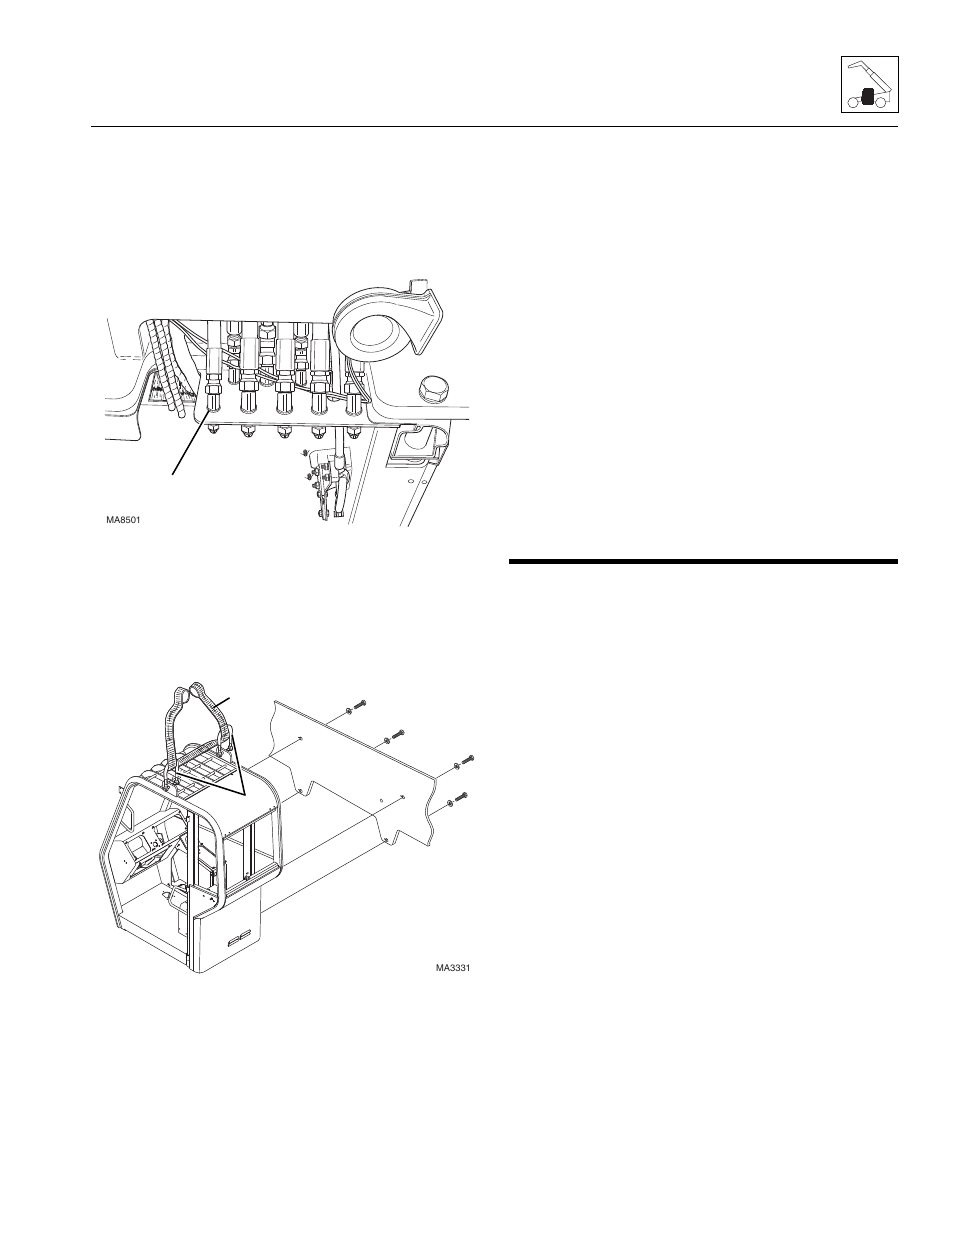 Skytrak 8042 Wiring Diagram Yale Glp060 Jcb 506c 5 Cab Installation Service Manual On